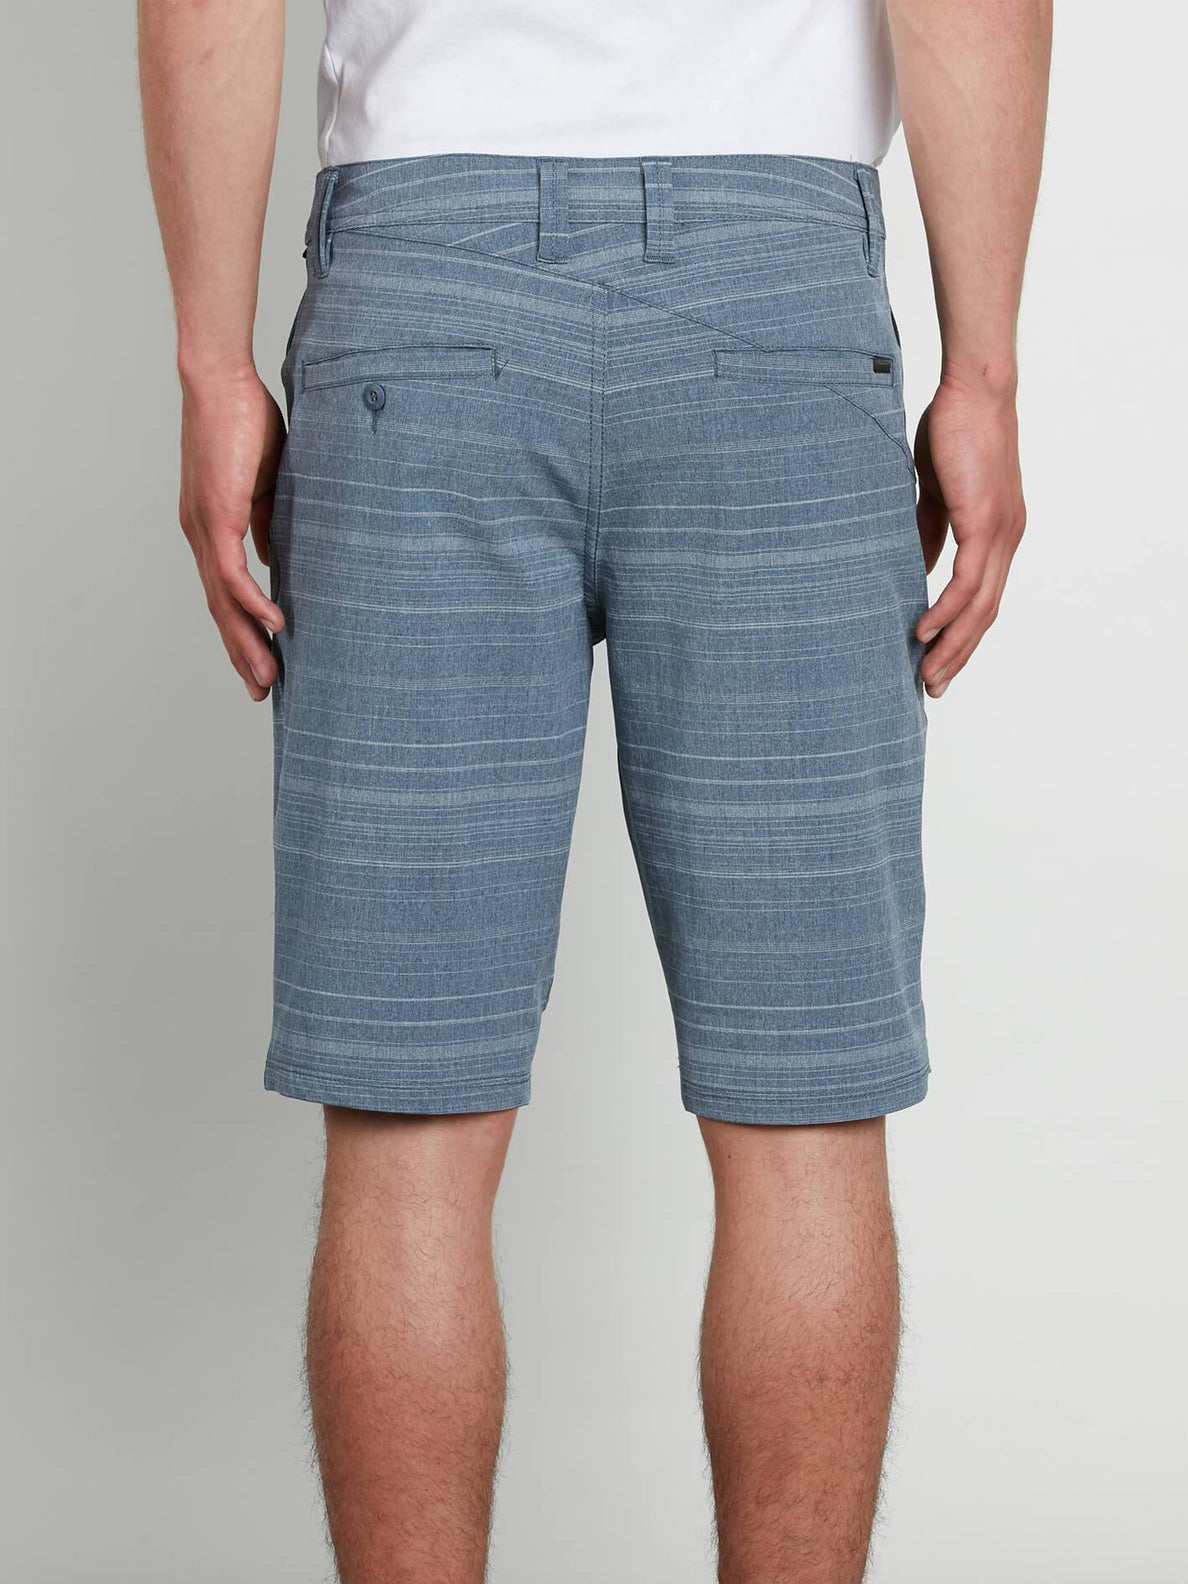 Frickin Surf N' Turf Mix Hybrid Shorts In Service Blue, Back View